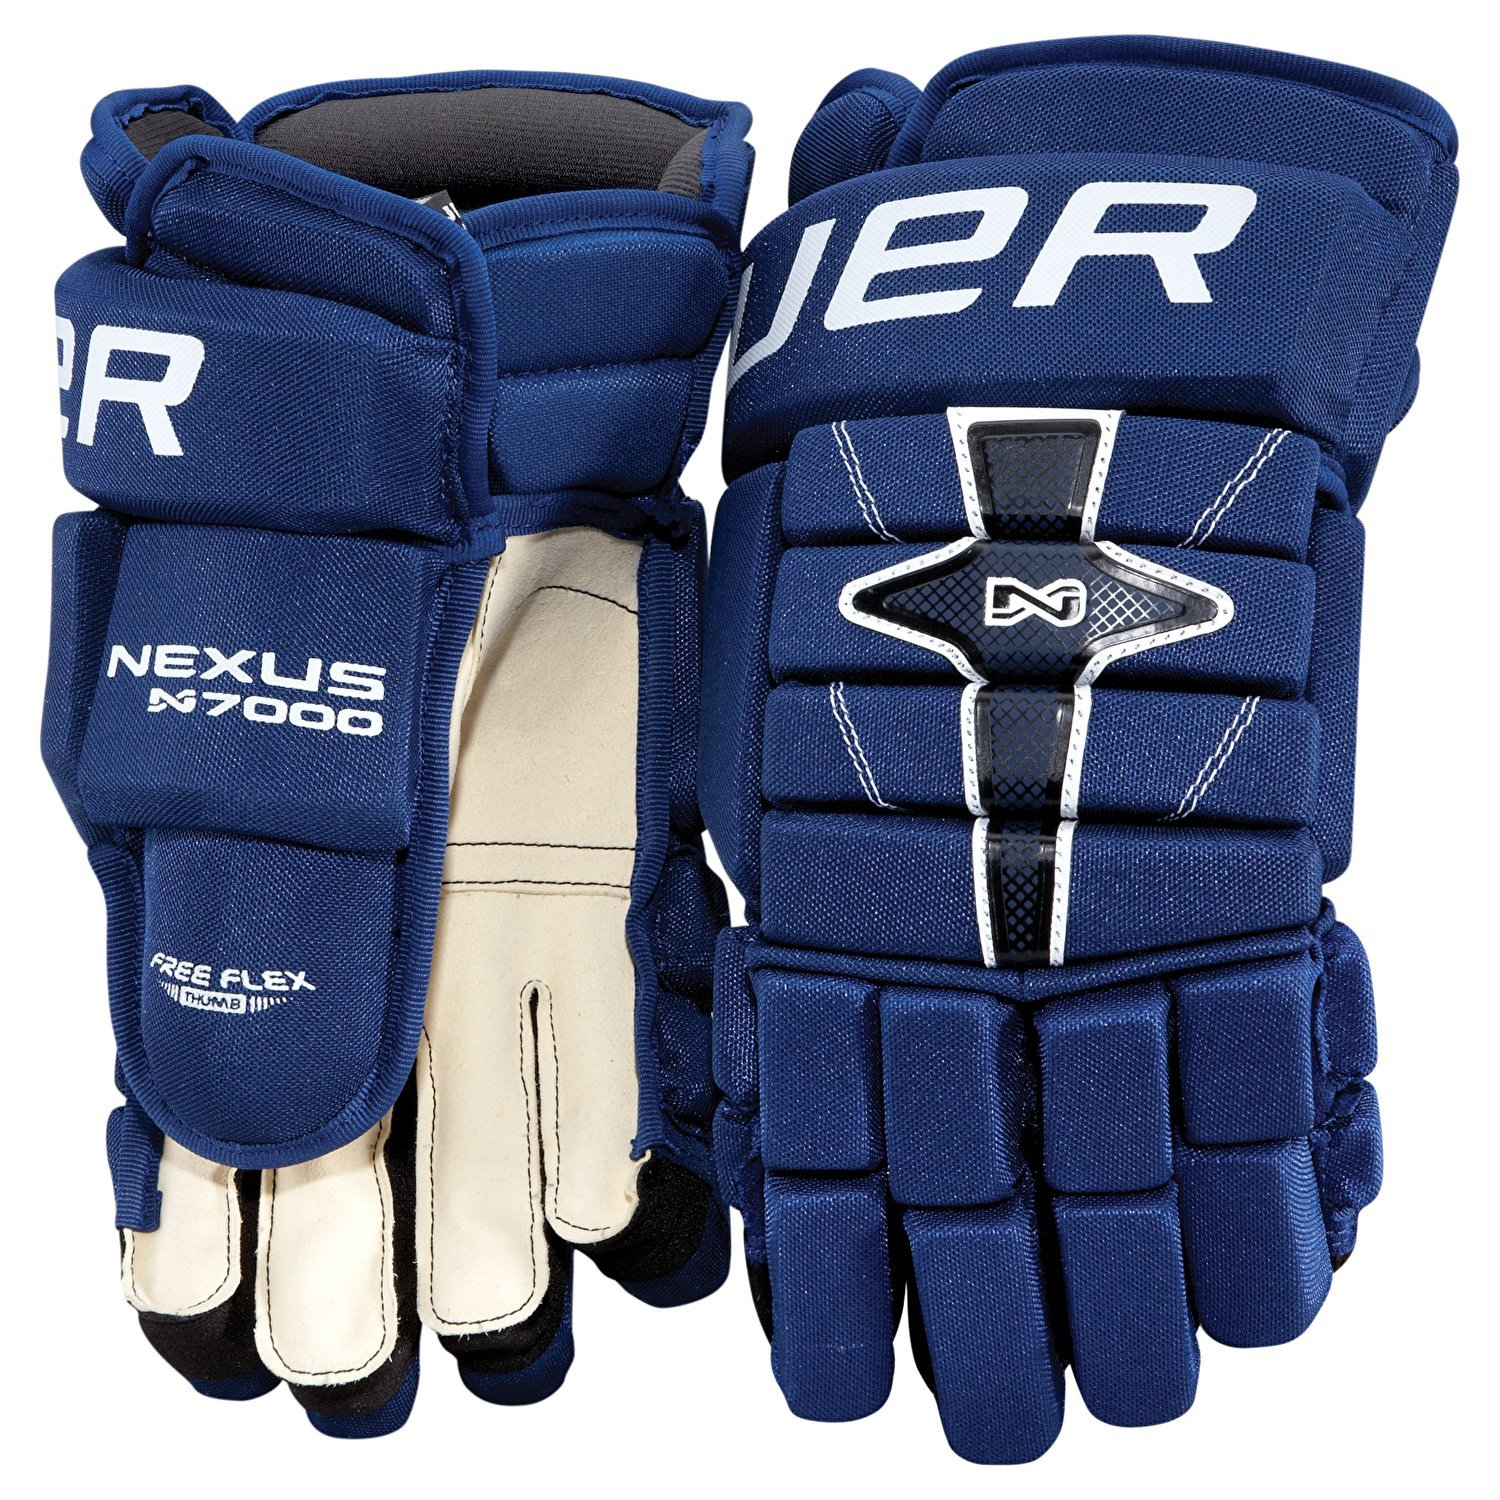 5550a23e0d4 Get Quotations · Bauer Nexus N7000 Hockey Gloves - Junior - 10 Inch - Black